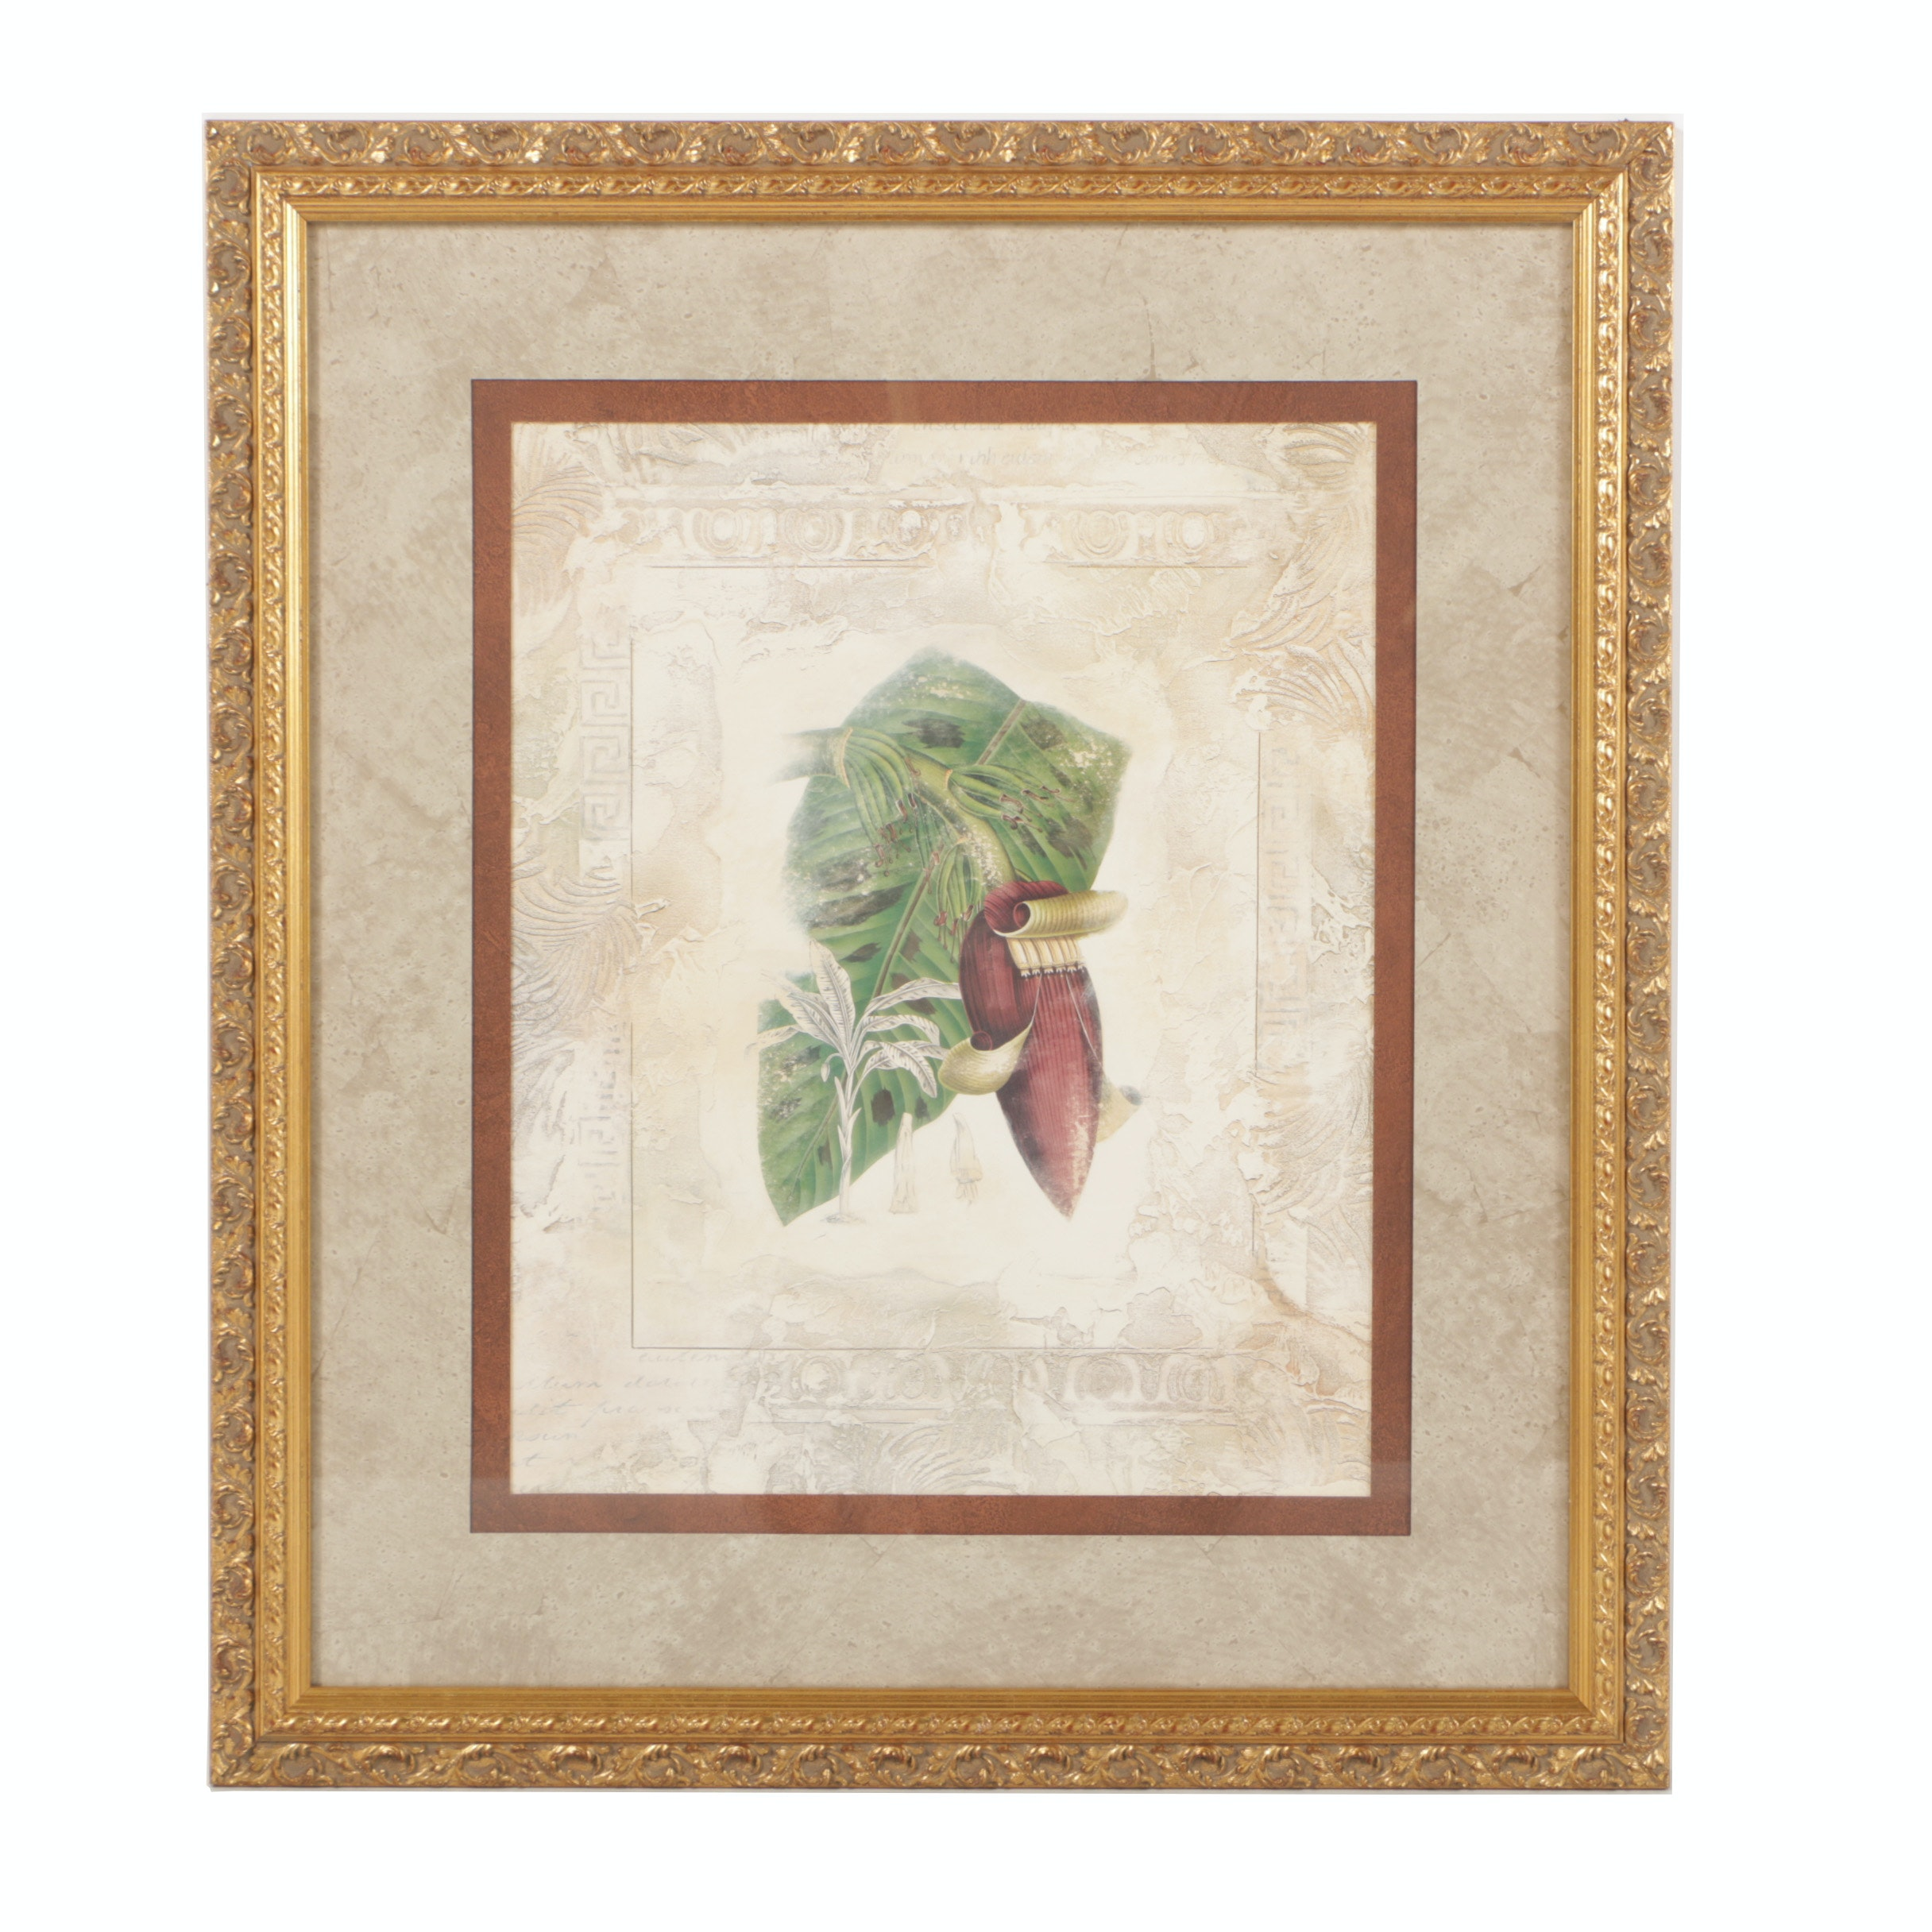 Botanical Print of Banana Blossom